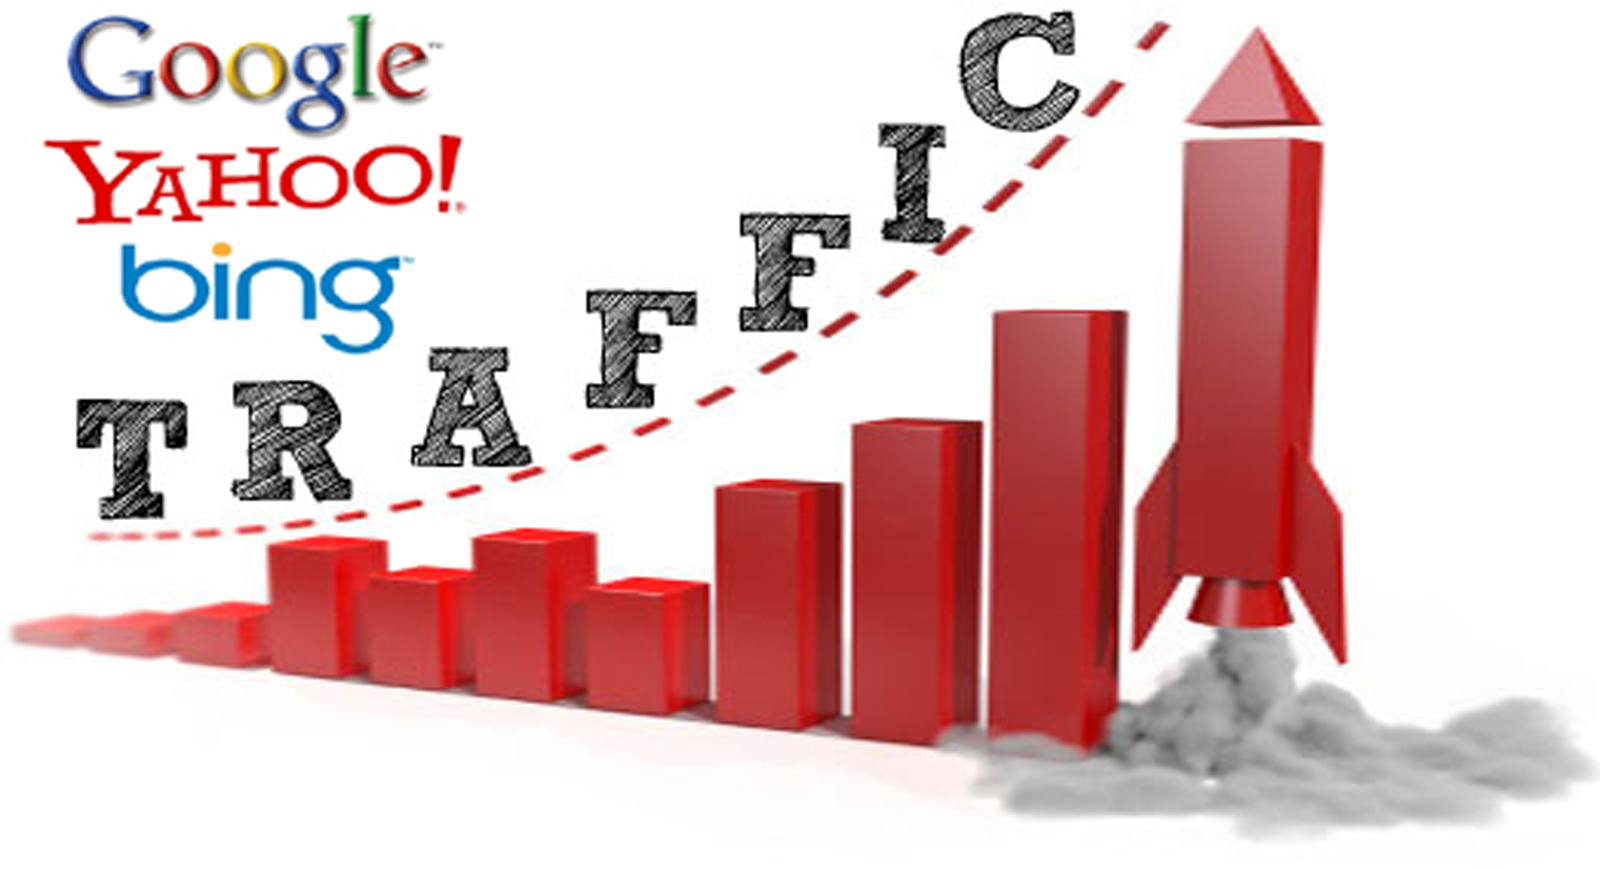 Send Unlimited Traffic For 1 Month